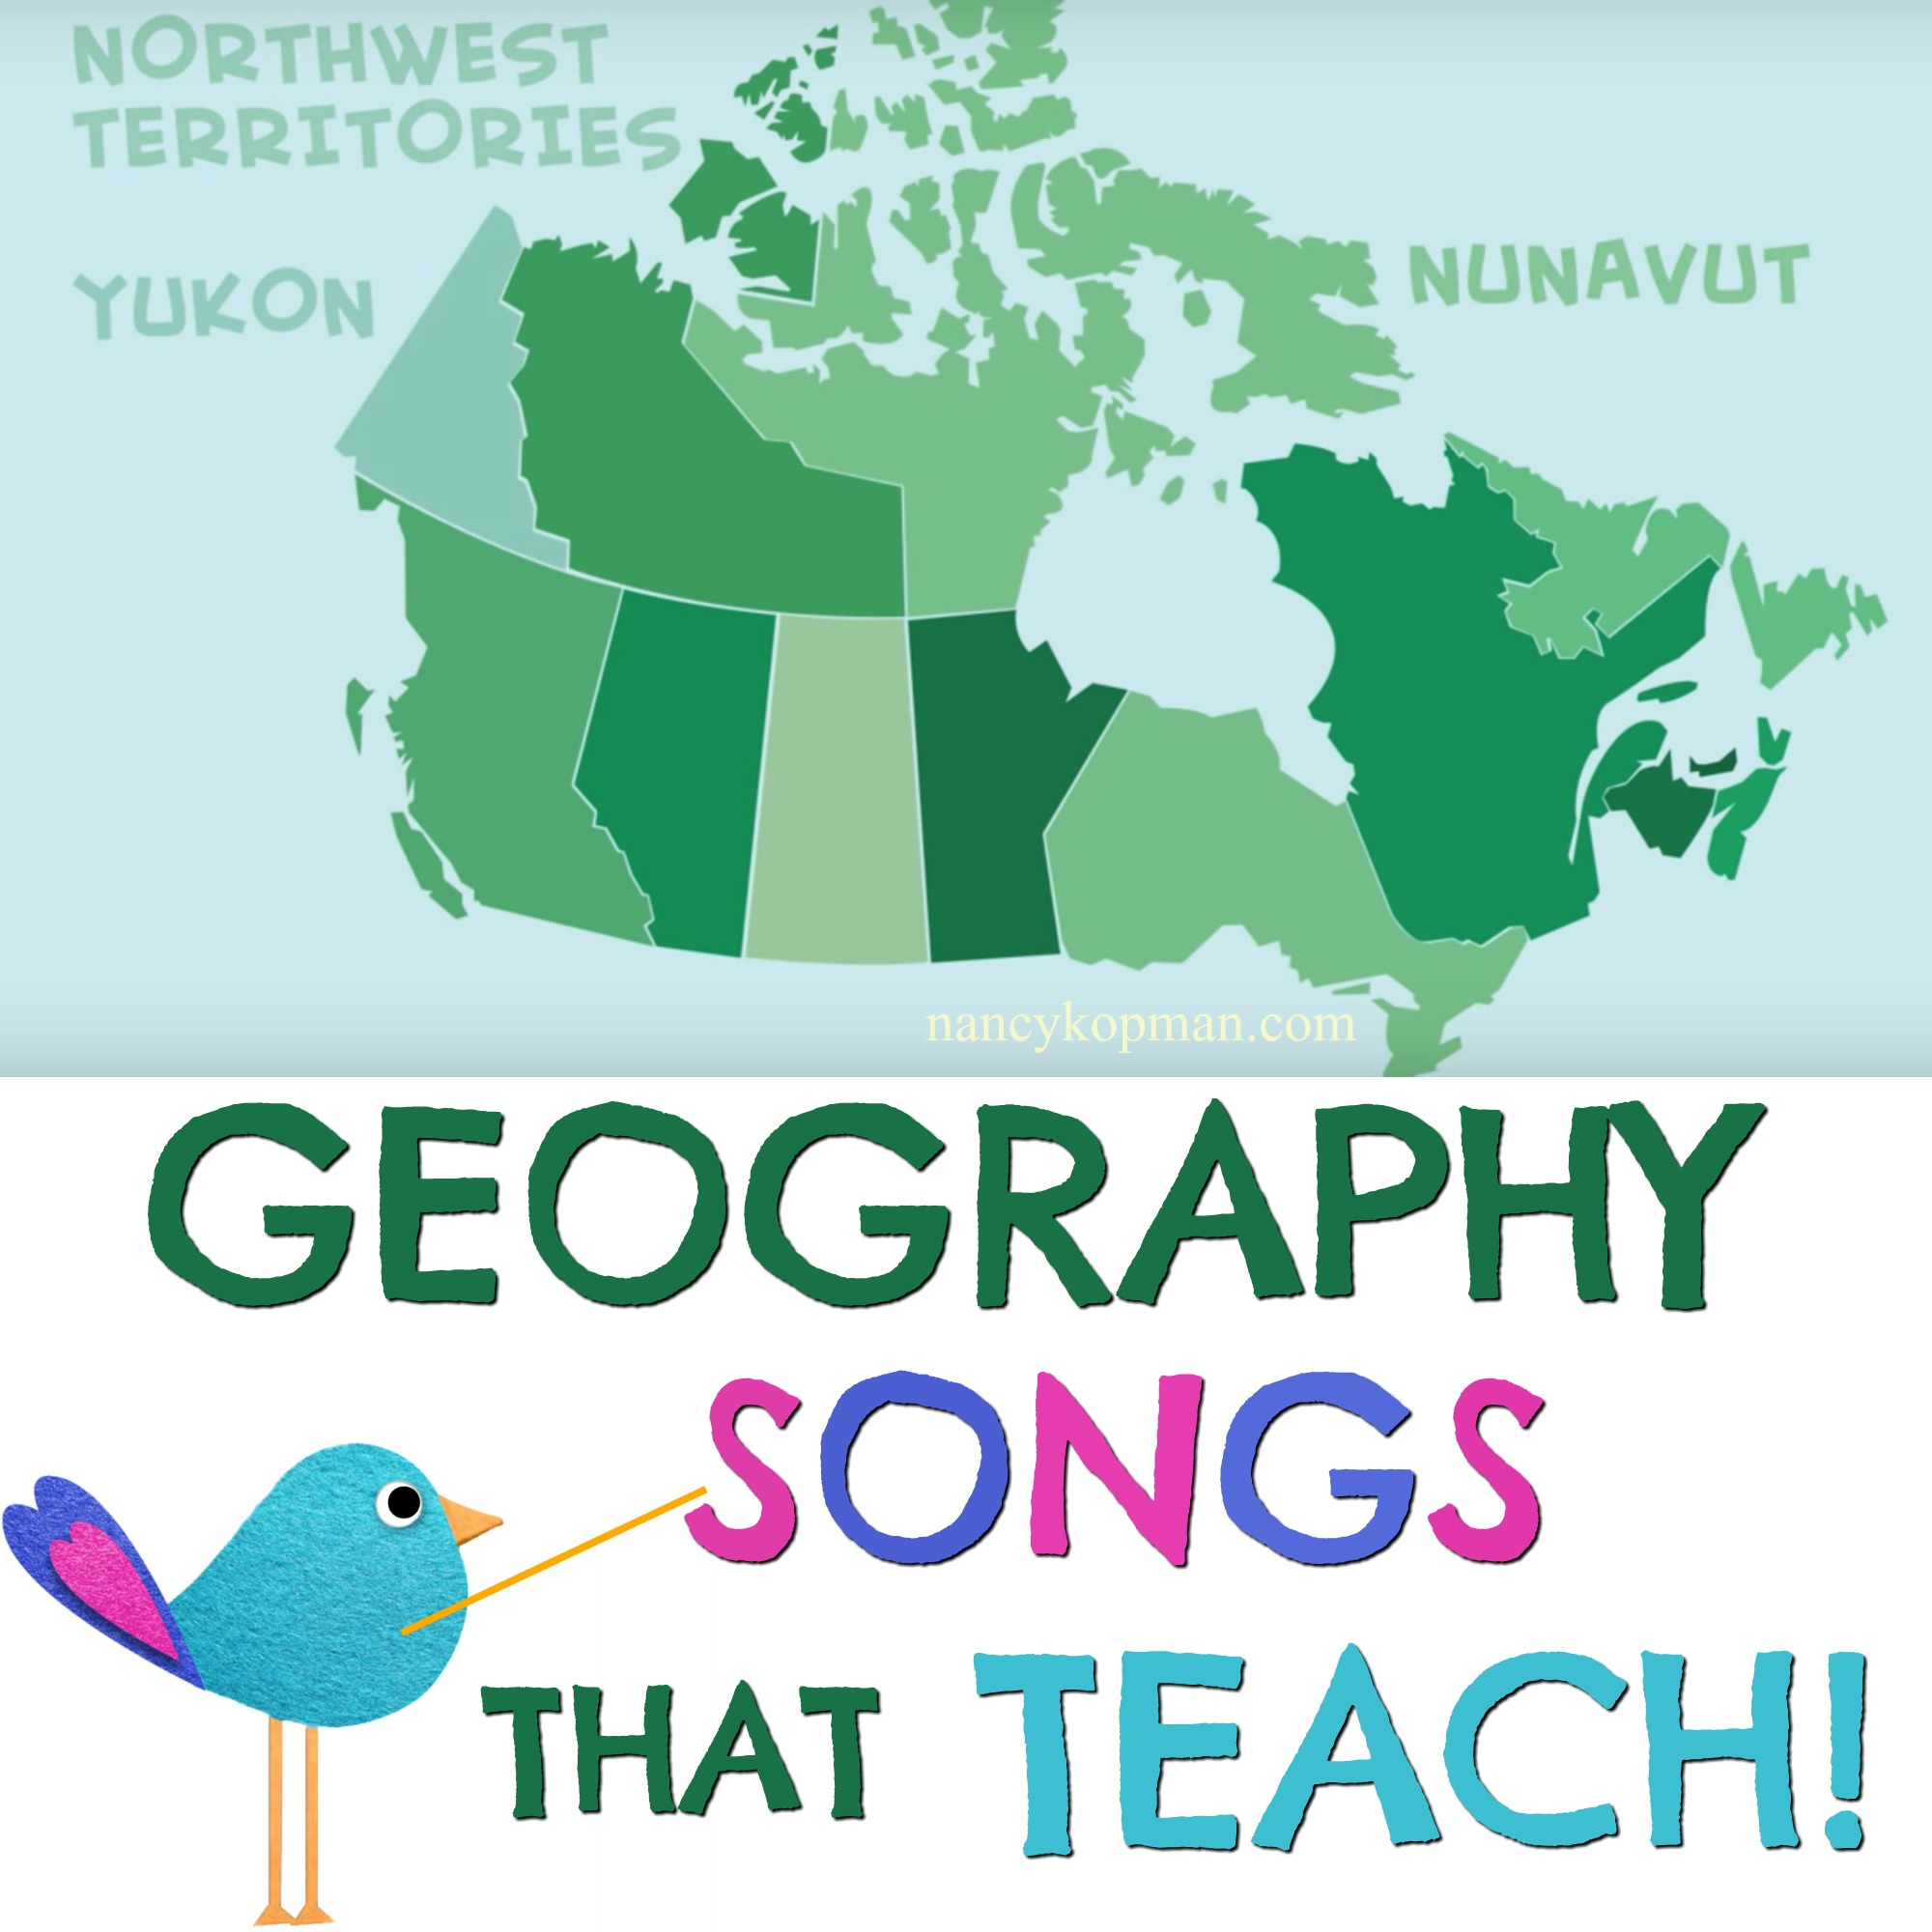 geography songs teach